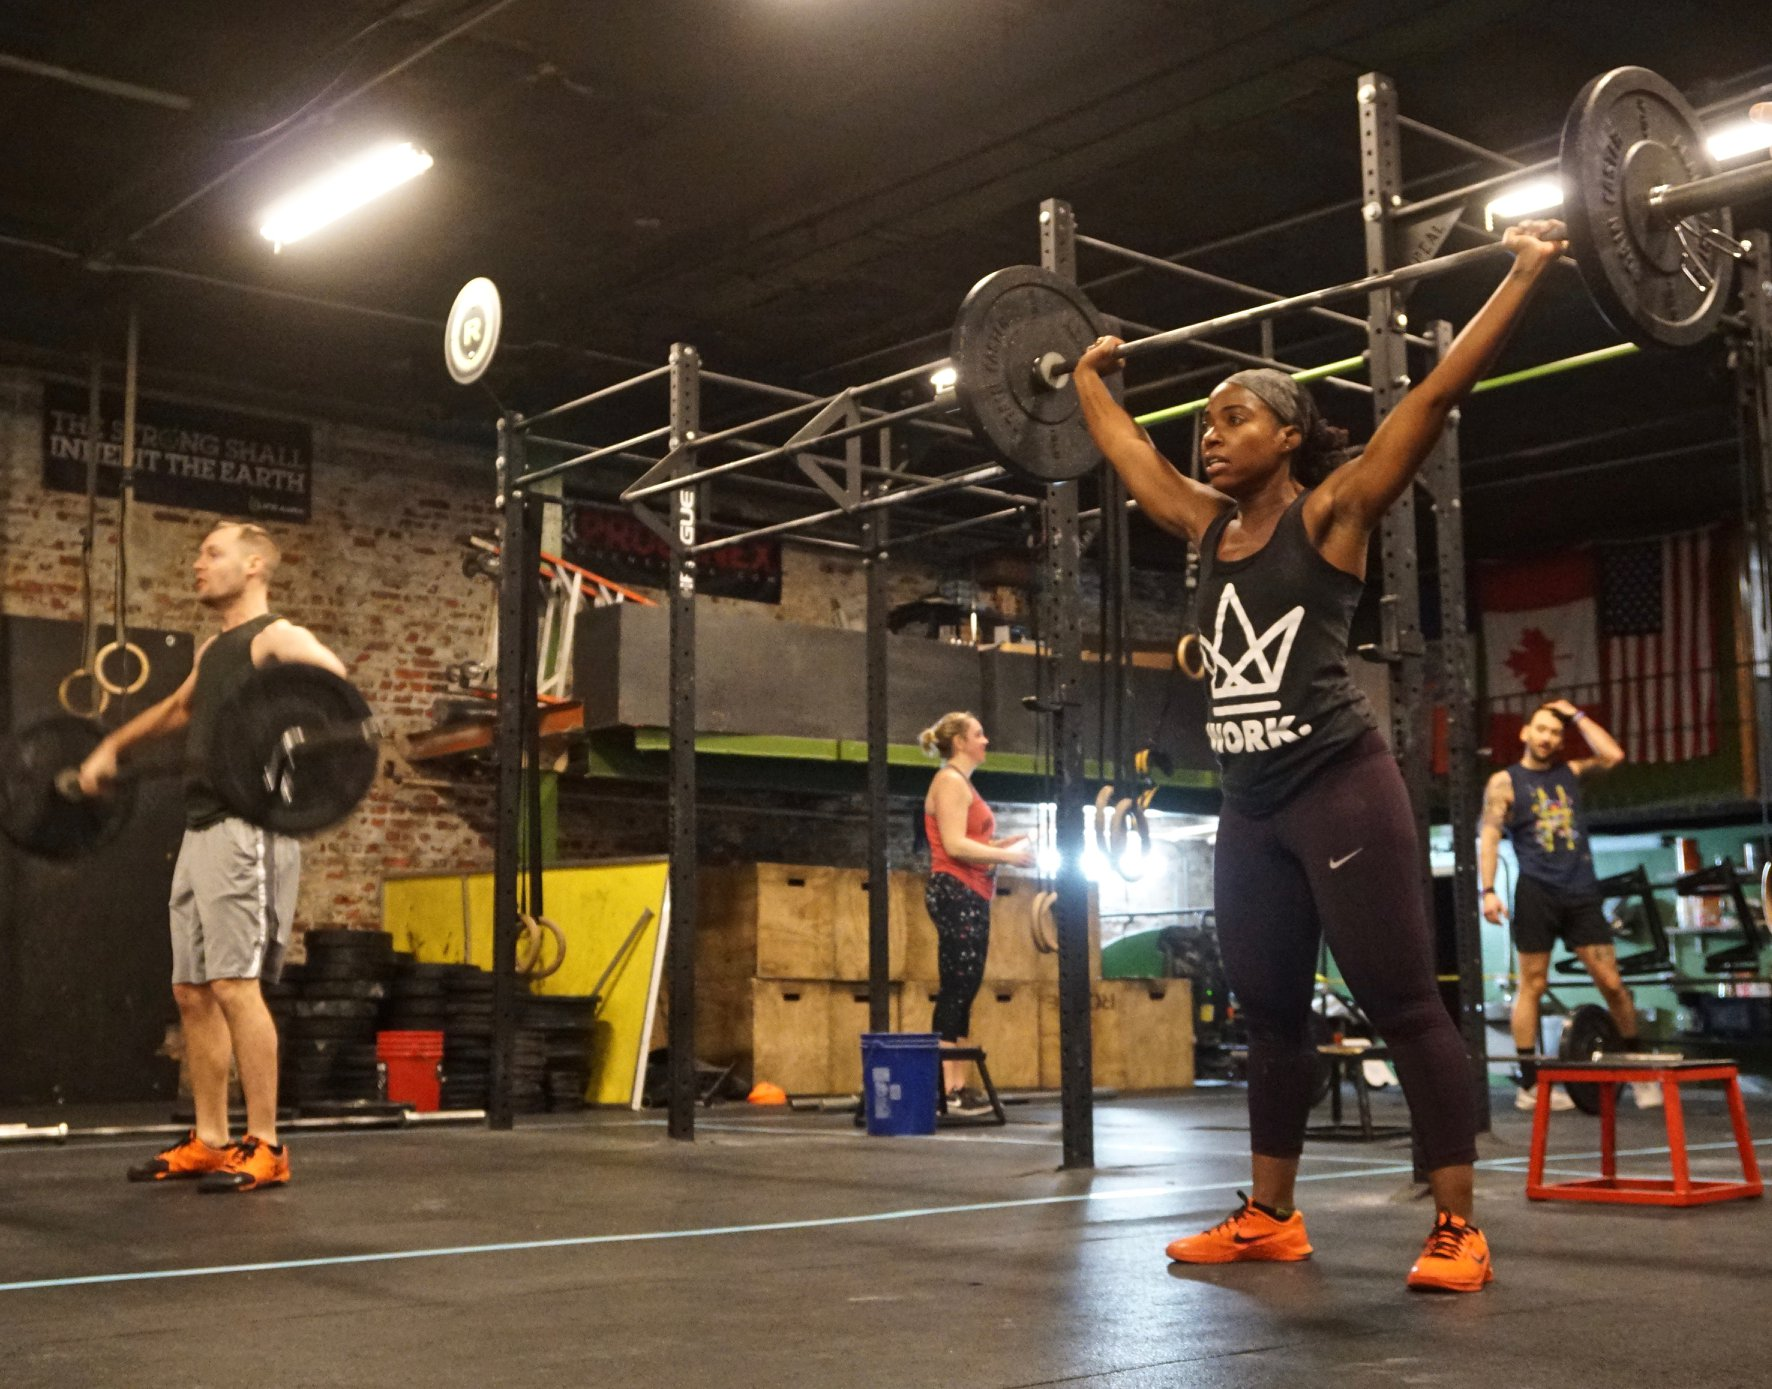 About - We were the first CrossFit affiliate serving the neighborhoods of Crown Heights, Prospect Heights, and Bed-Stuy. Come learn what makes us the best.